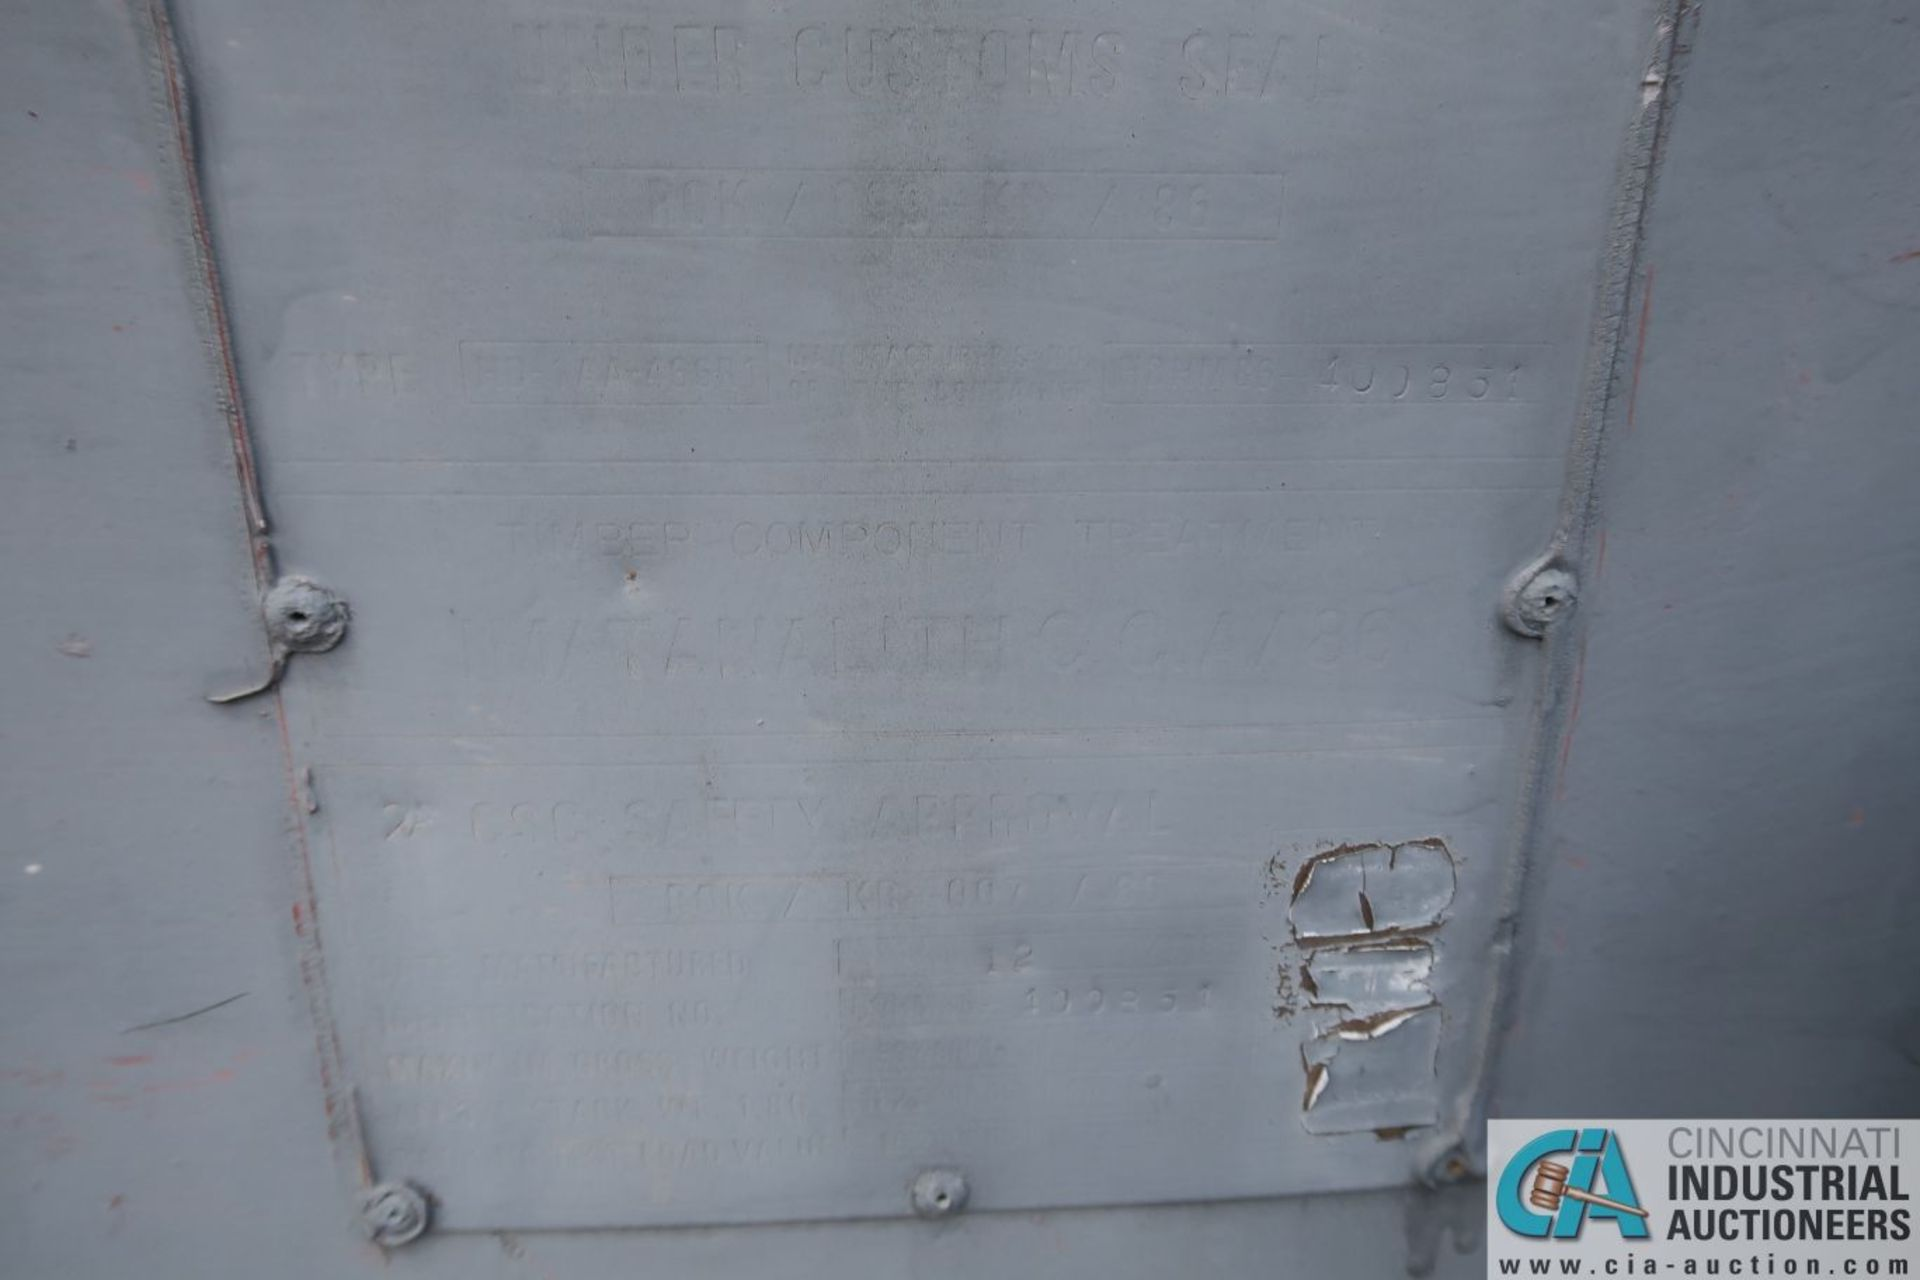 40' SHIPPING CONTAINER - Image 4 of 4